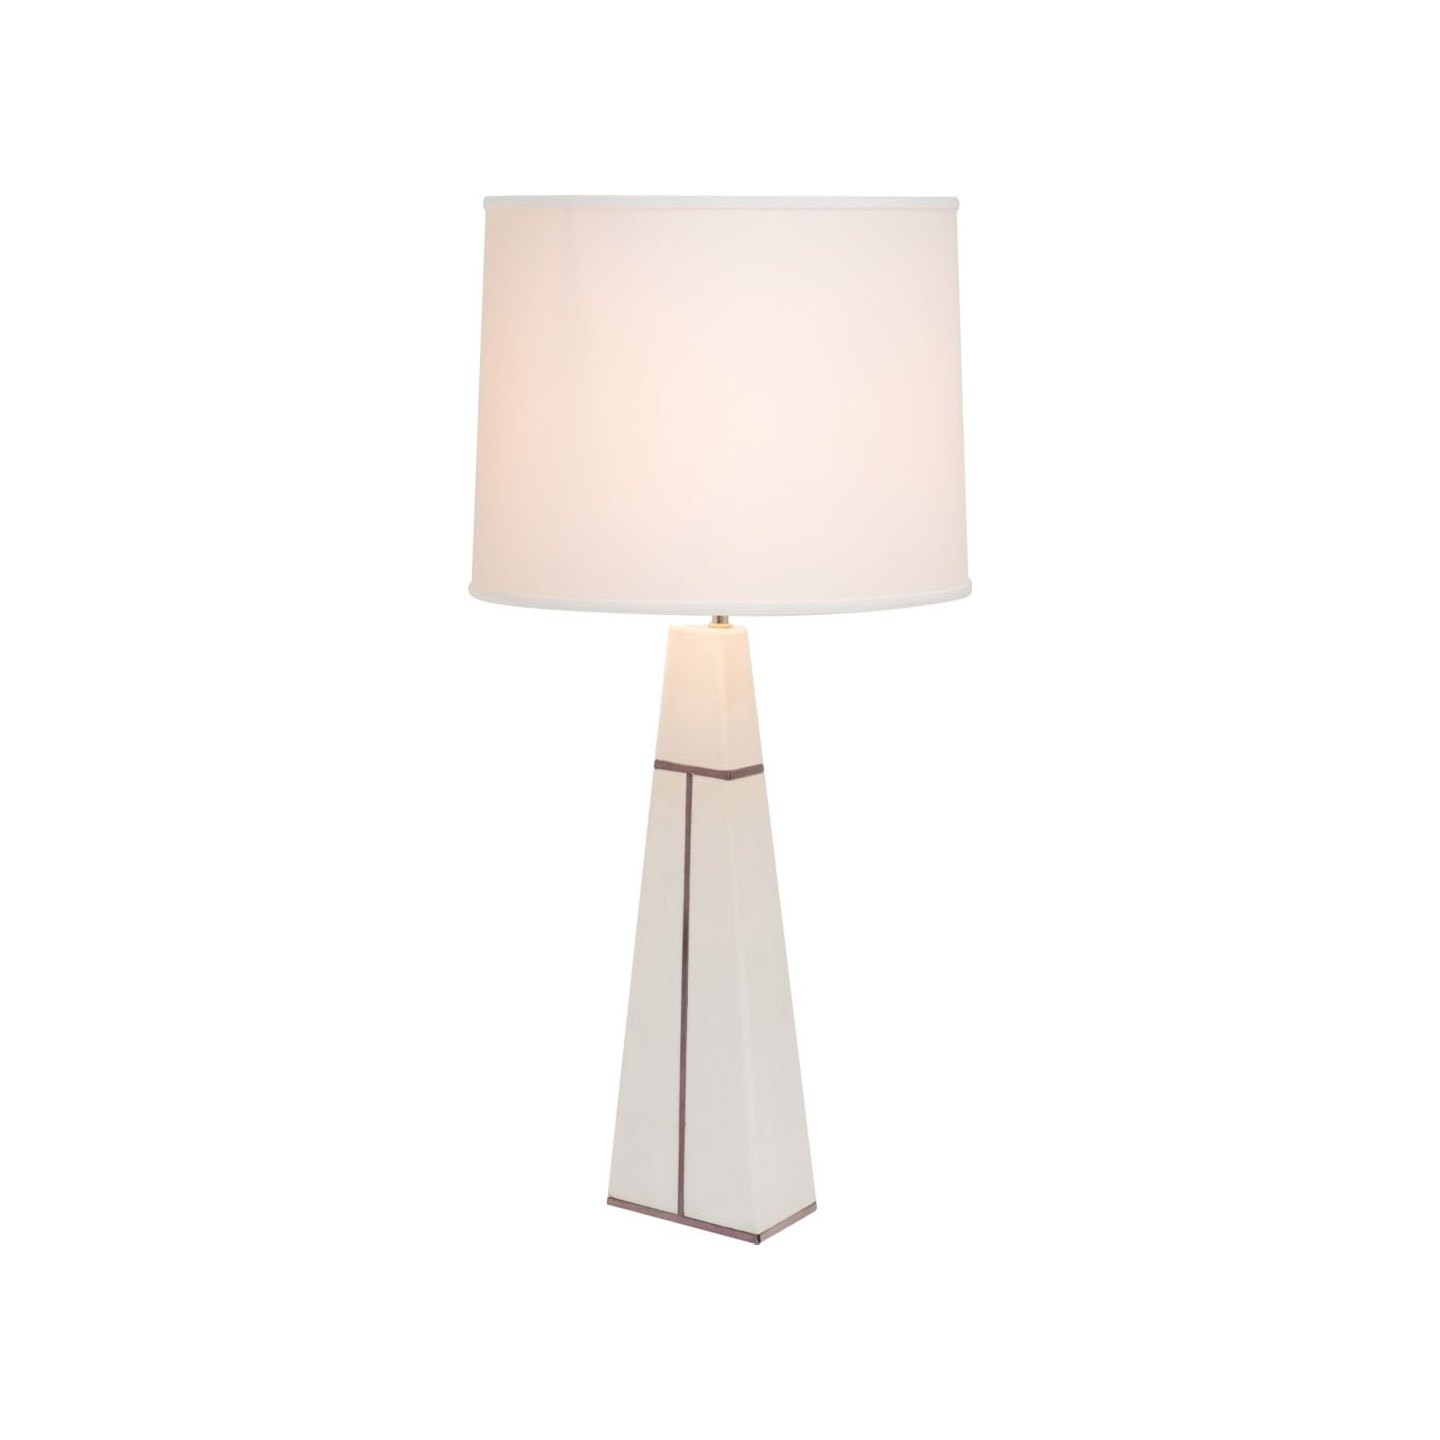 Walsh Table Lamp.jpg